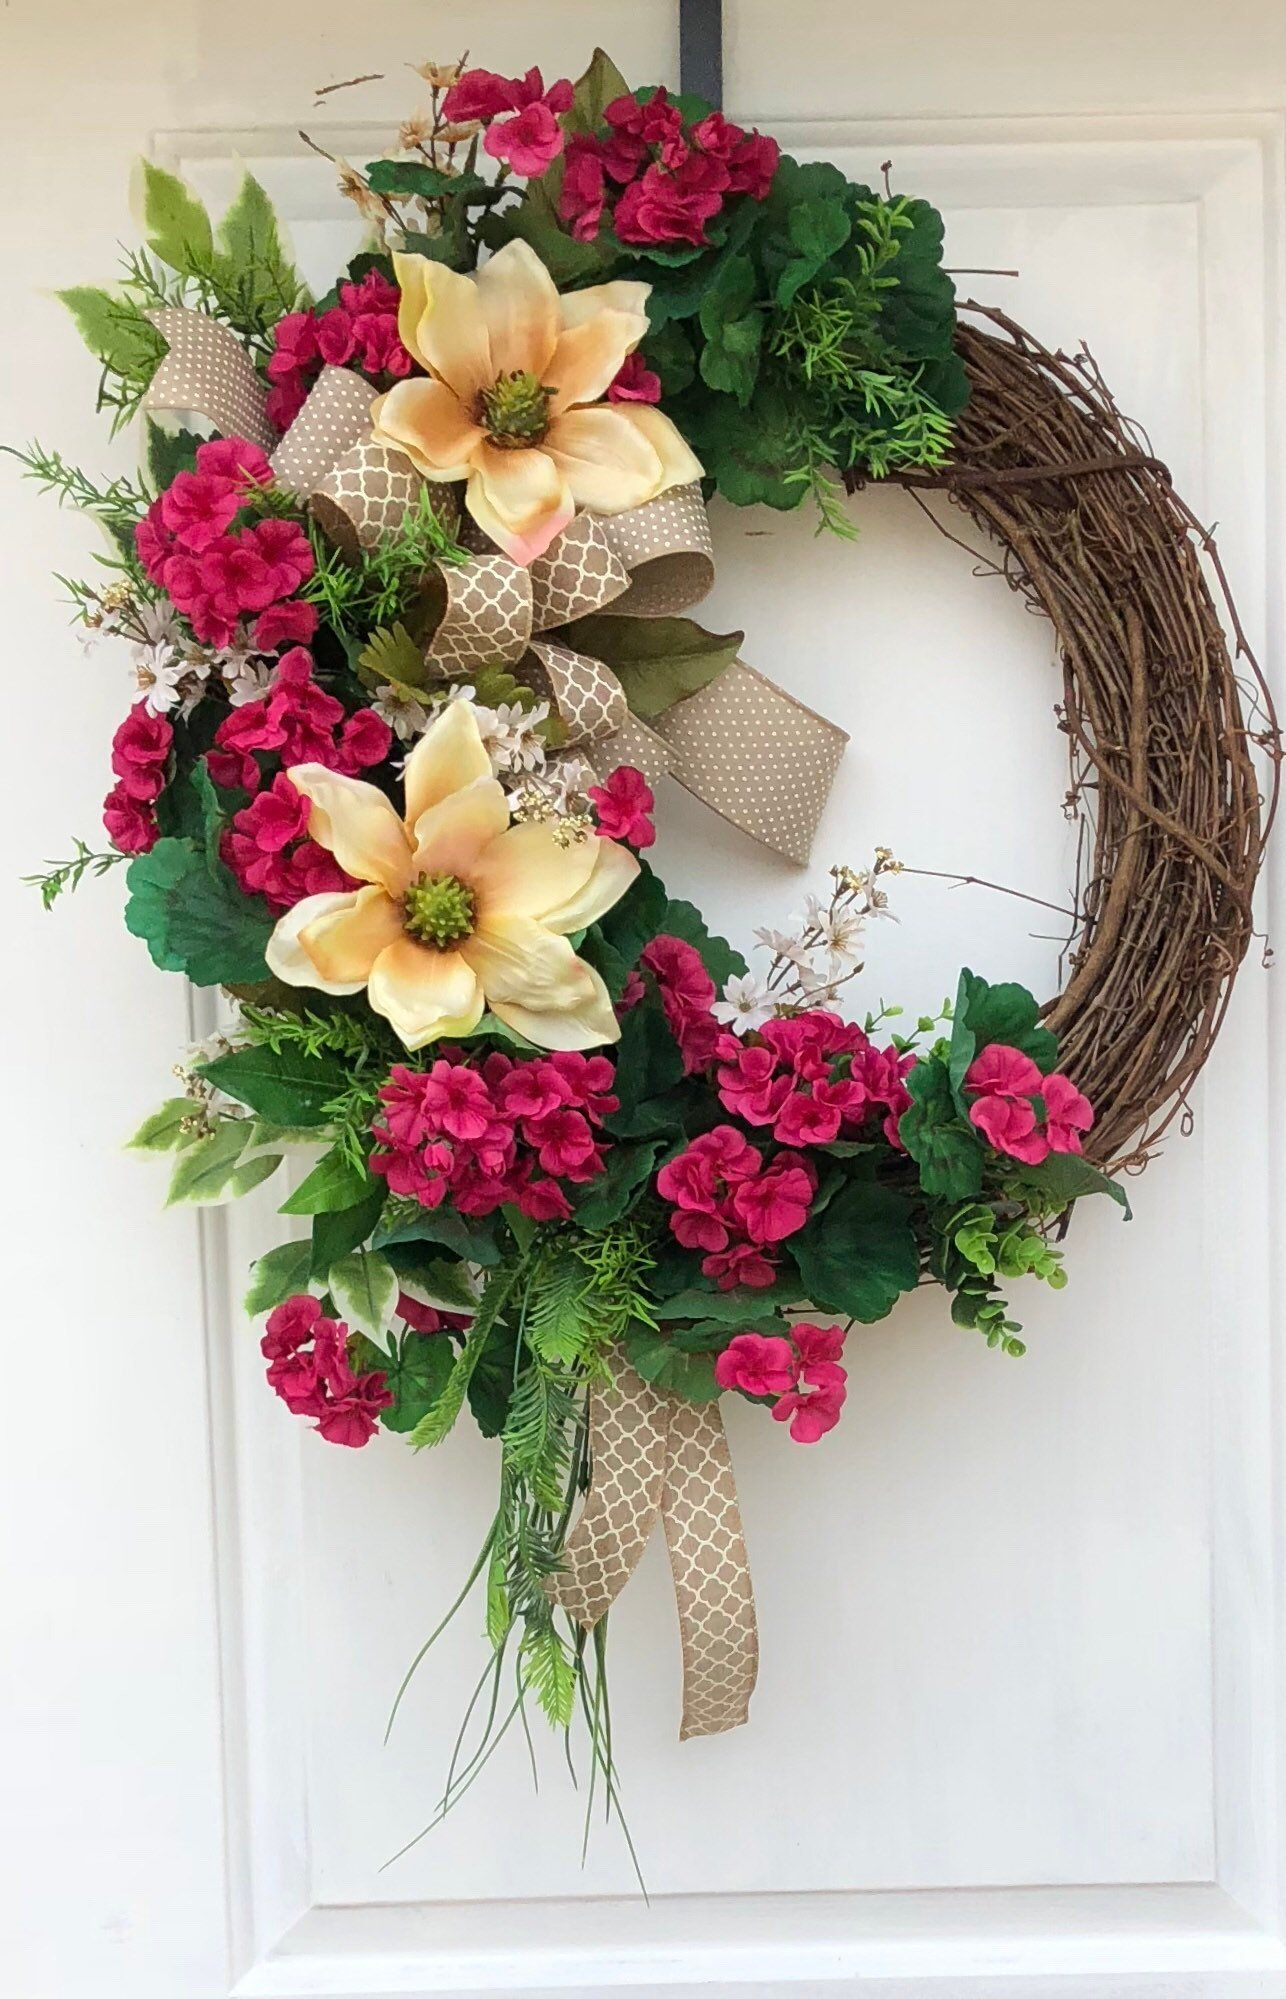 Photo of Everyday Wreath-Grapevine Wreath-Magnolia Wreath For Front Door- Wreath With Magnolias, Wreat…